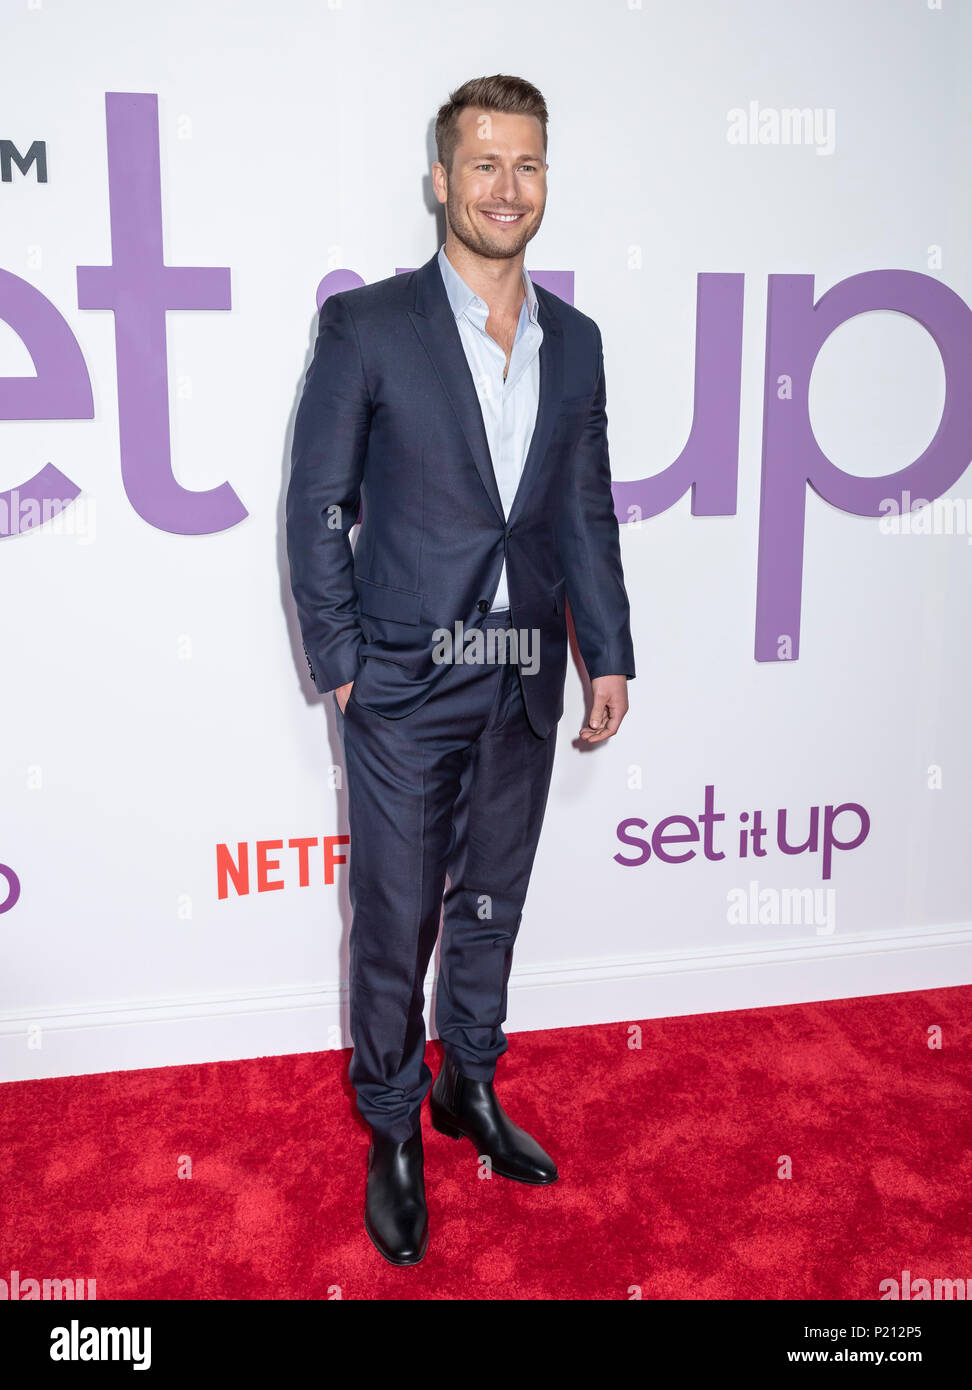 New York, NY, USA - June 12, 2018: Actor Glen Powell attends the New York special screening of the Netflix film 'Set It Up' at AMC Loews Lincoln Square Credit: Sam Aronov/Alamy Live News - Stock Image